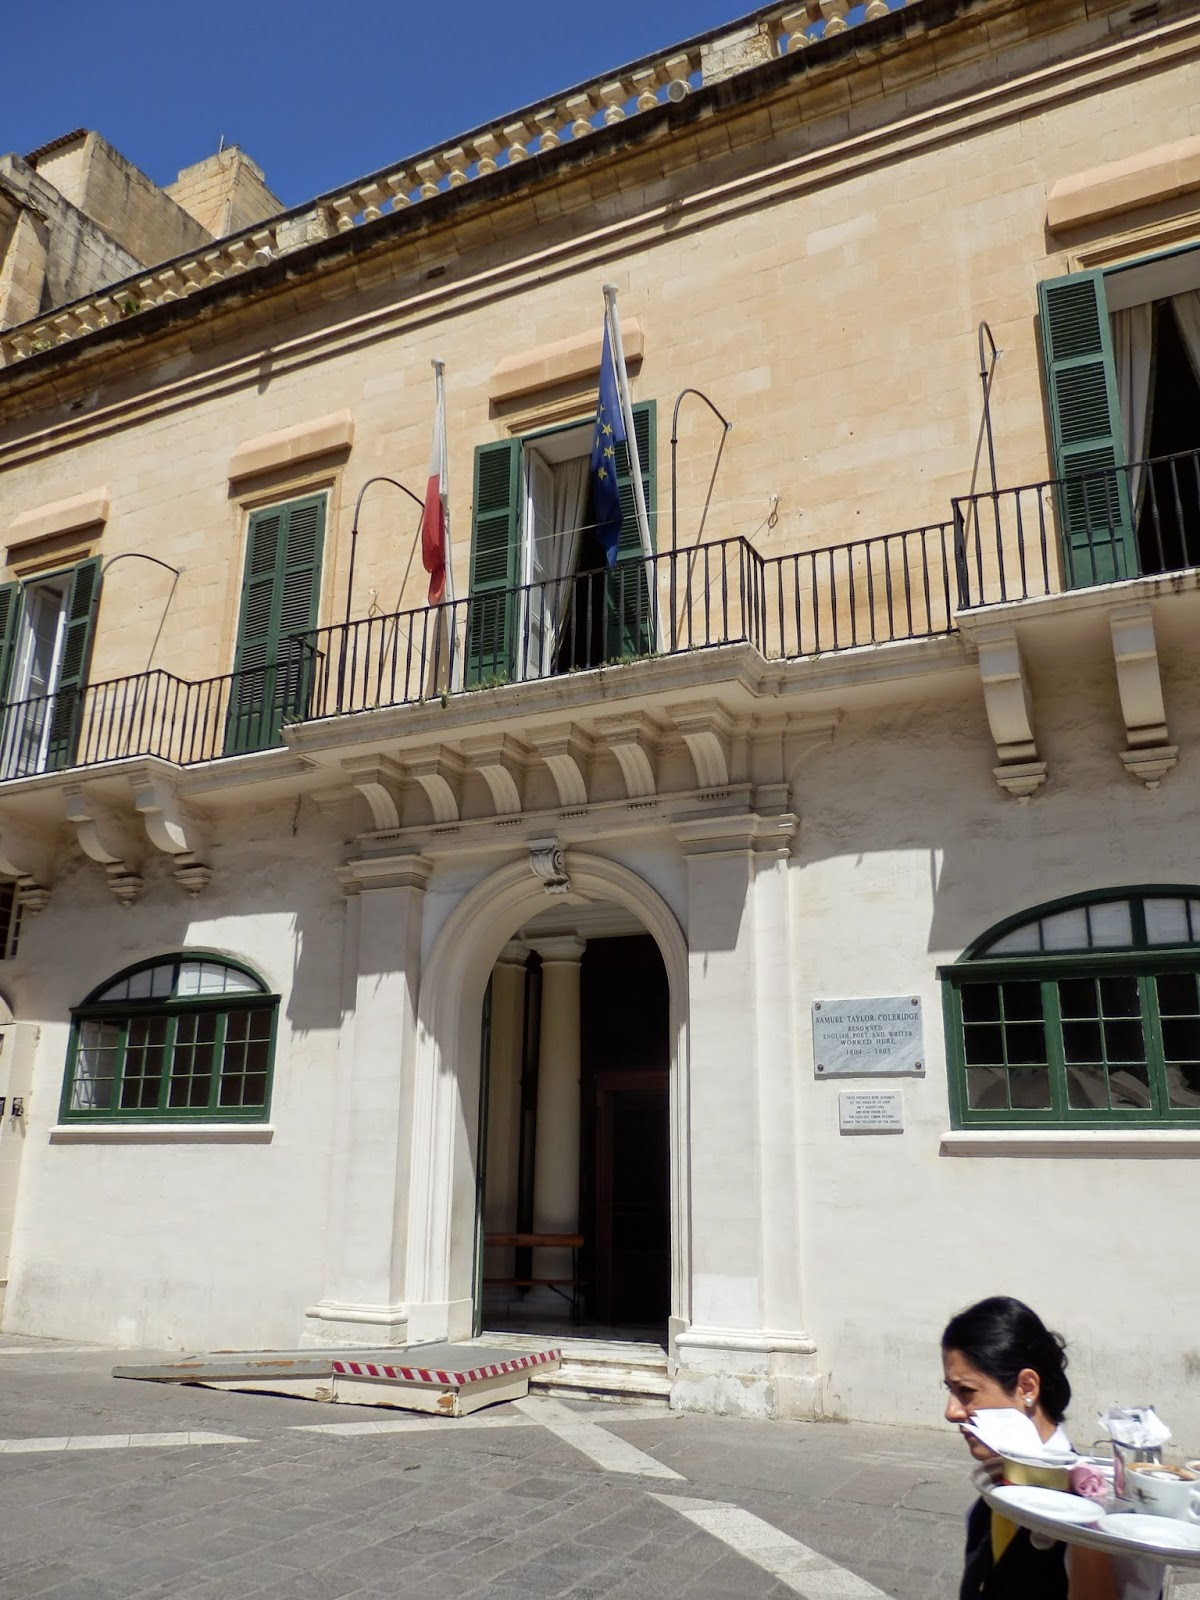 Where Samuel Taylor Coleridge lived in Valletta, Malta